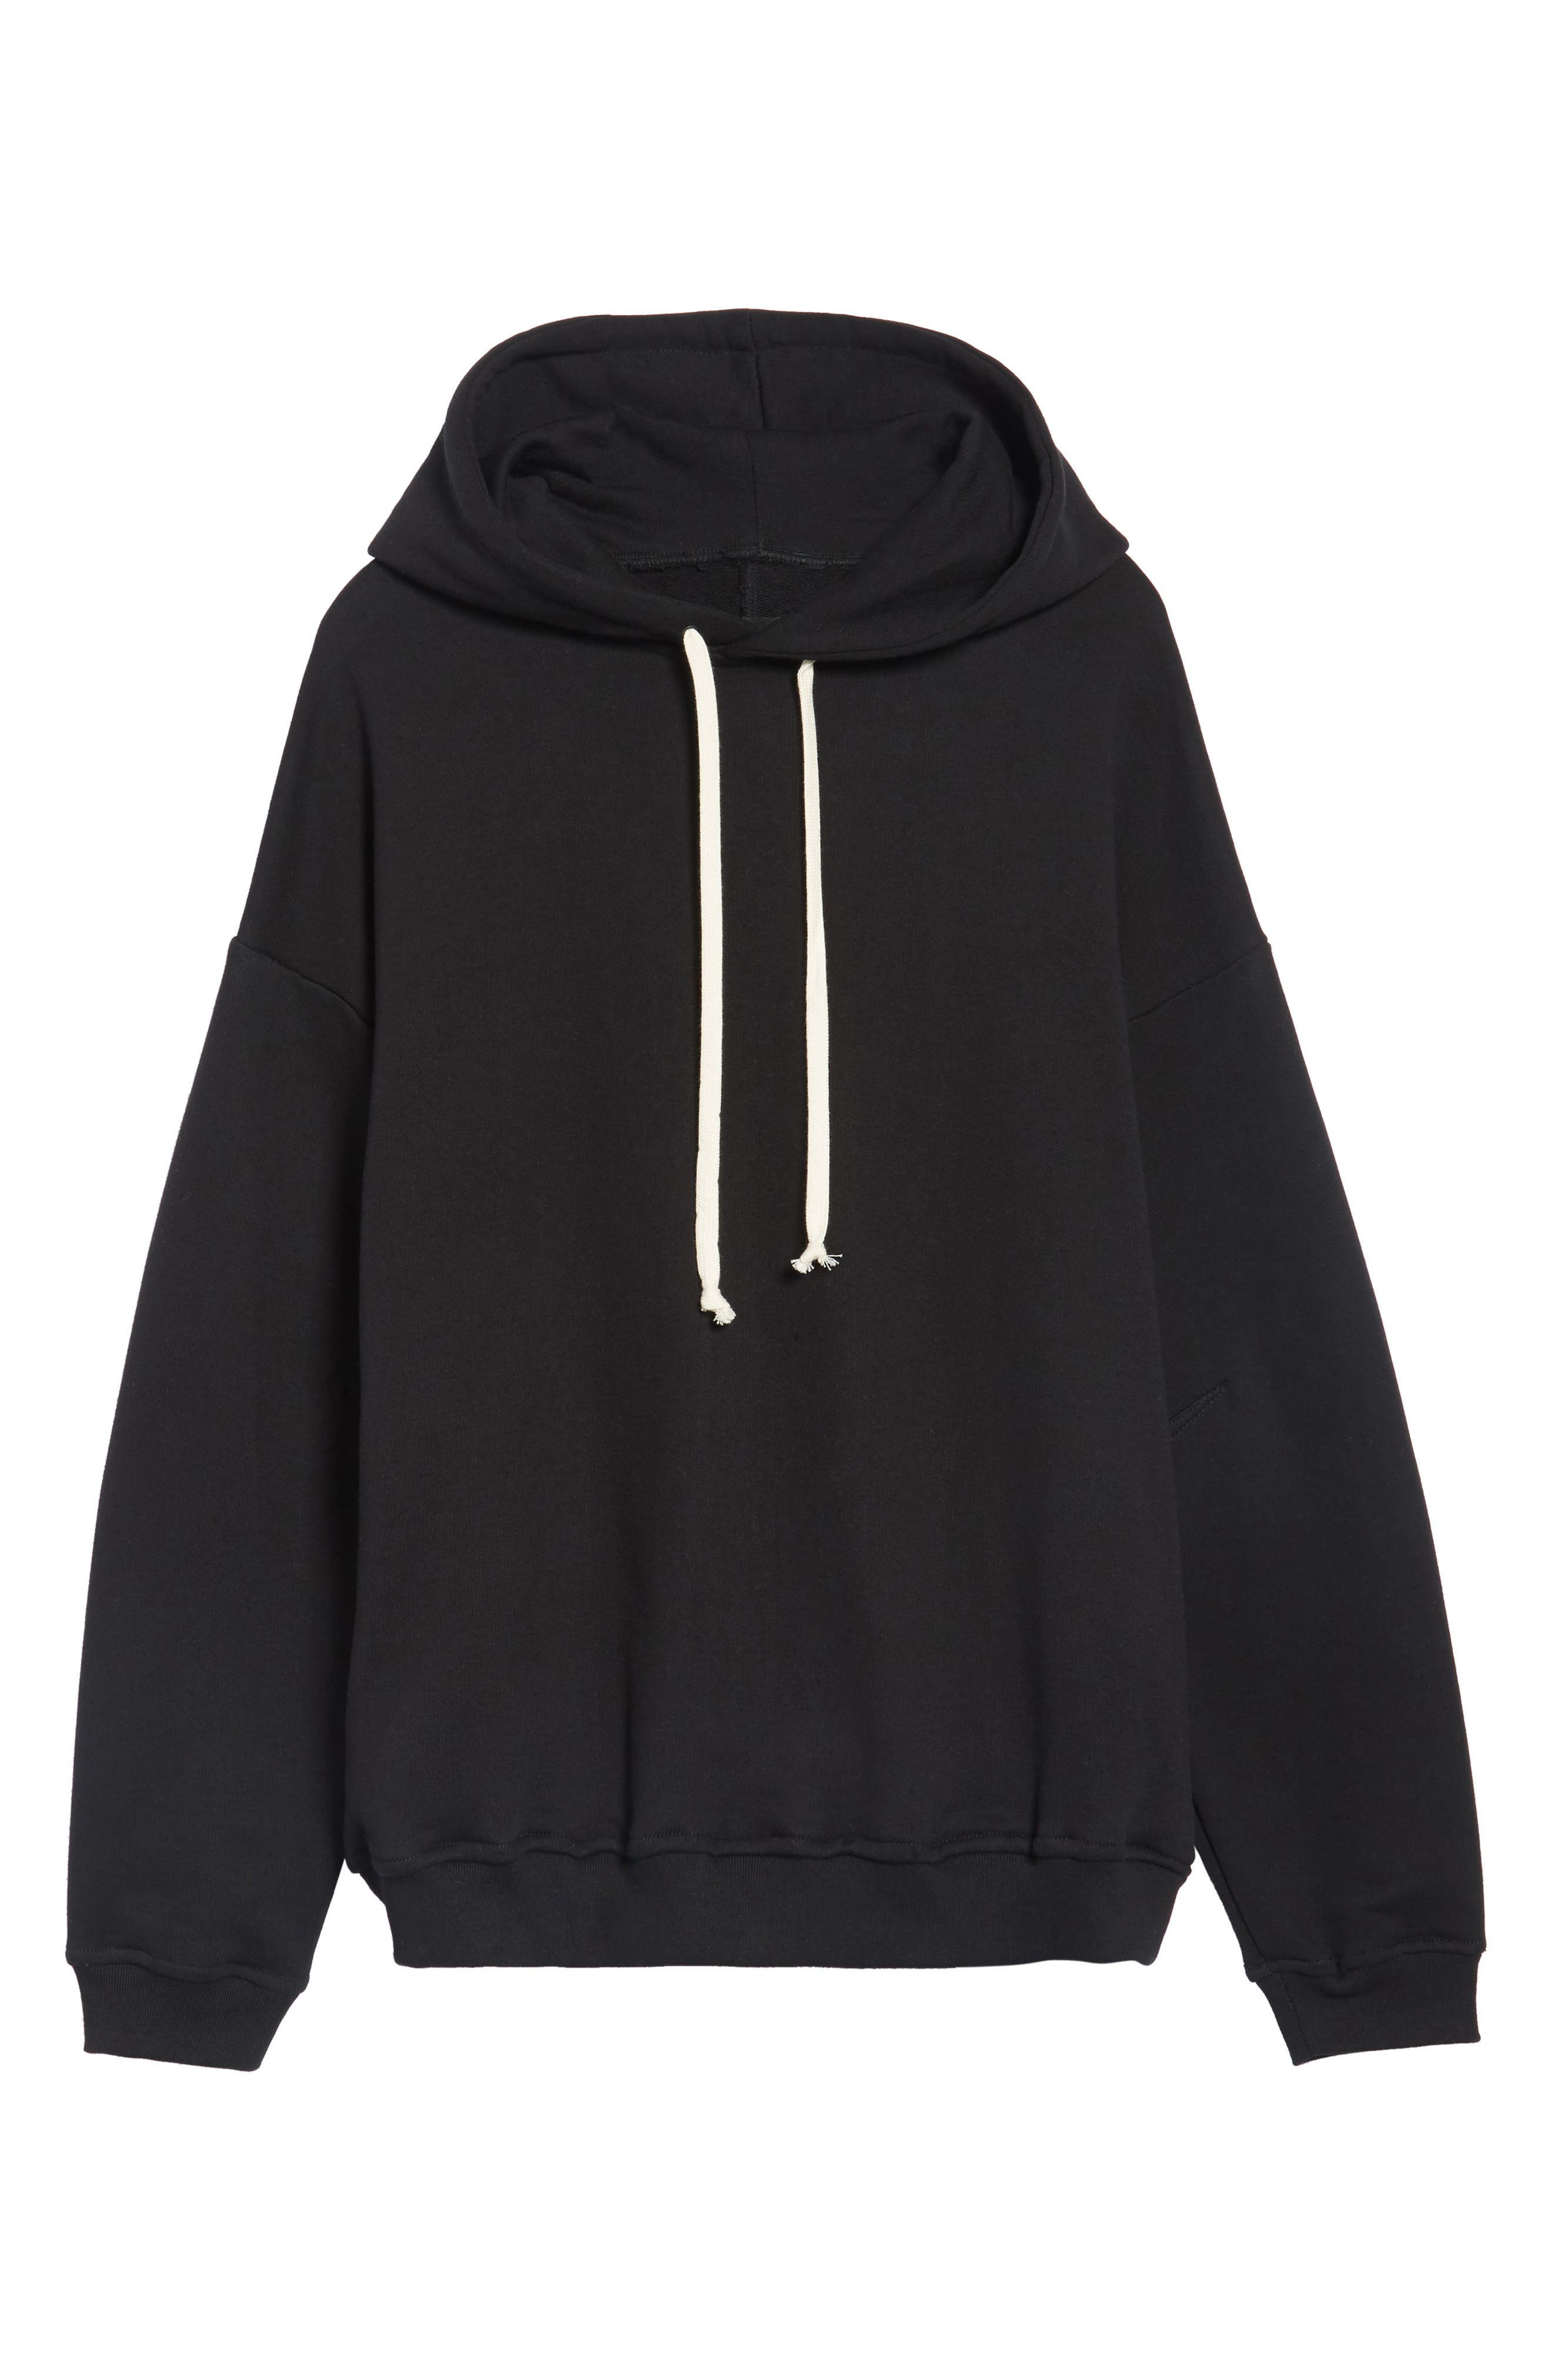 Relaxed Fit Hoodie,                             Alternate thumbnail 5, color,                             Black